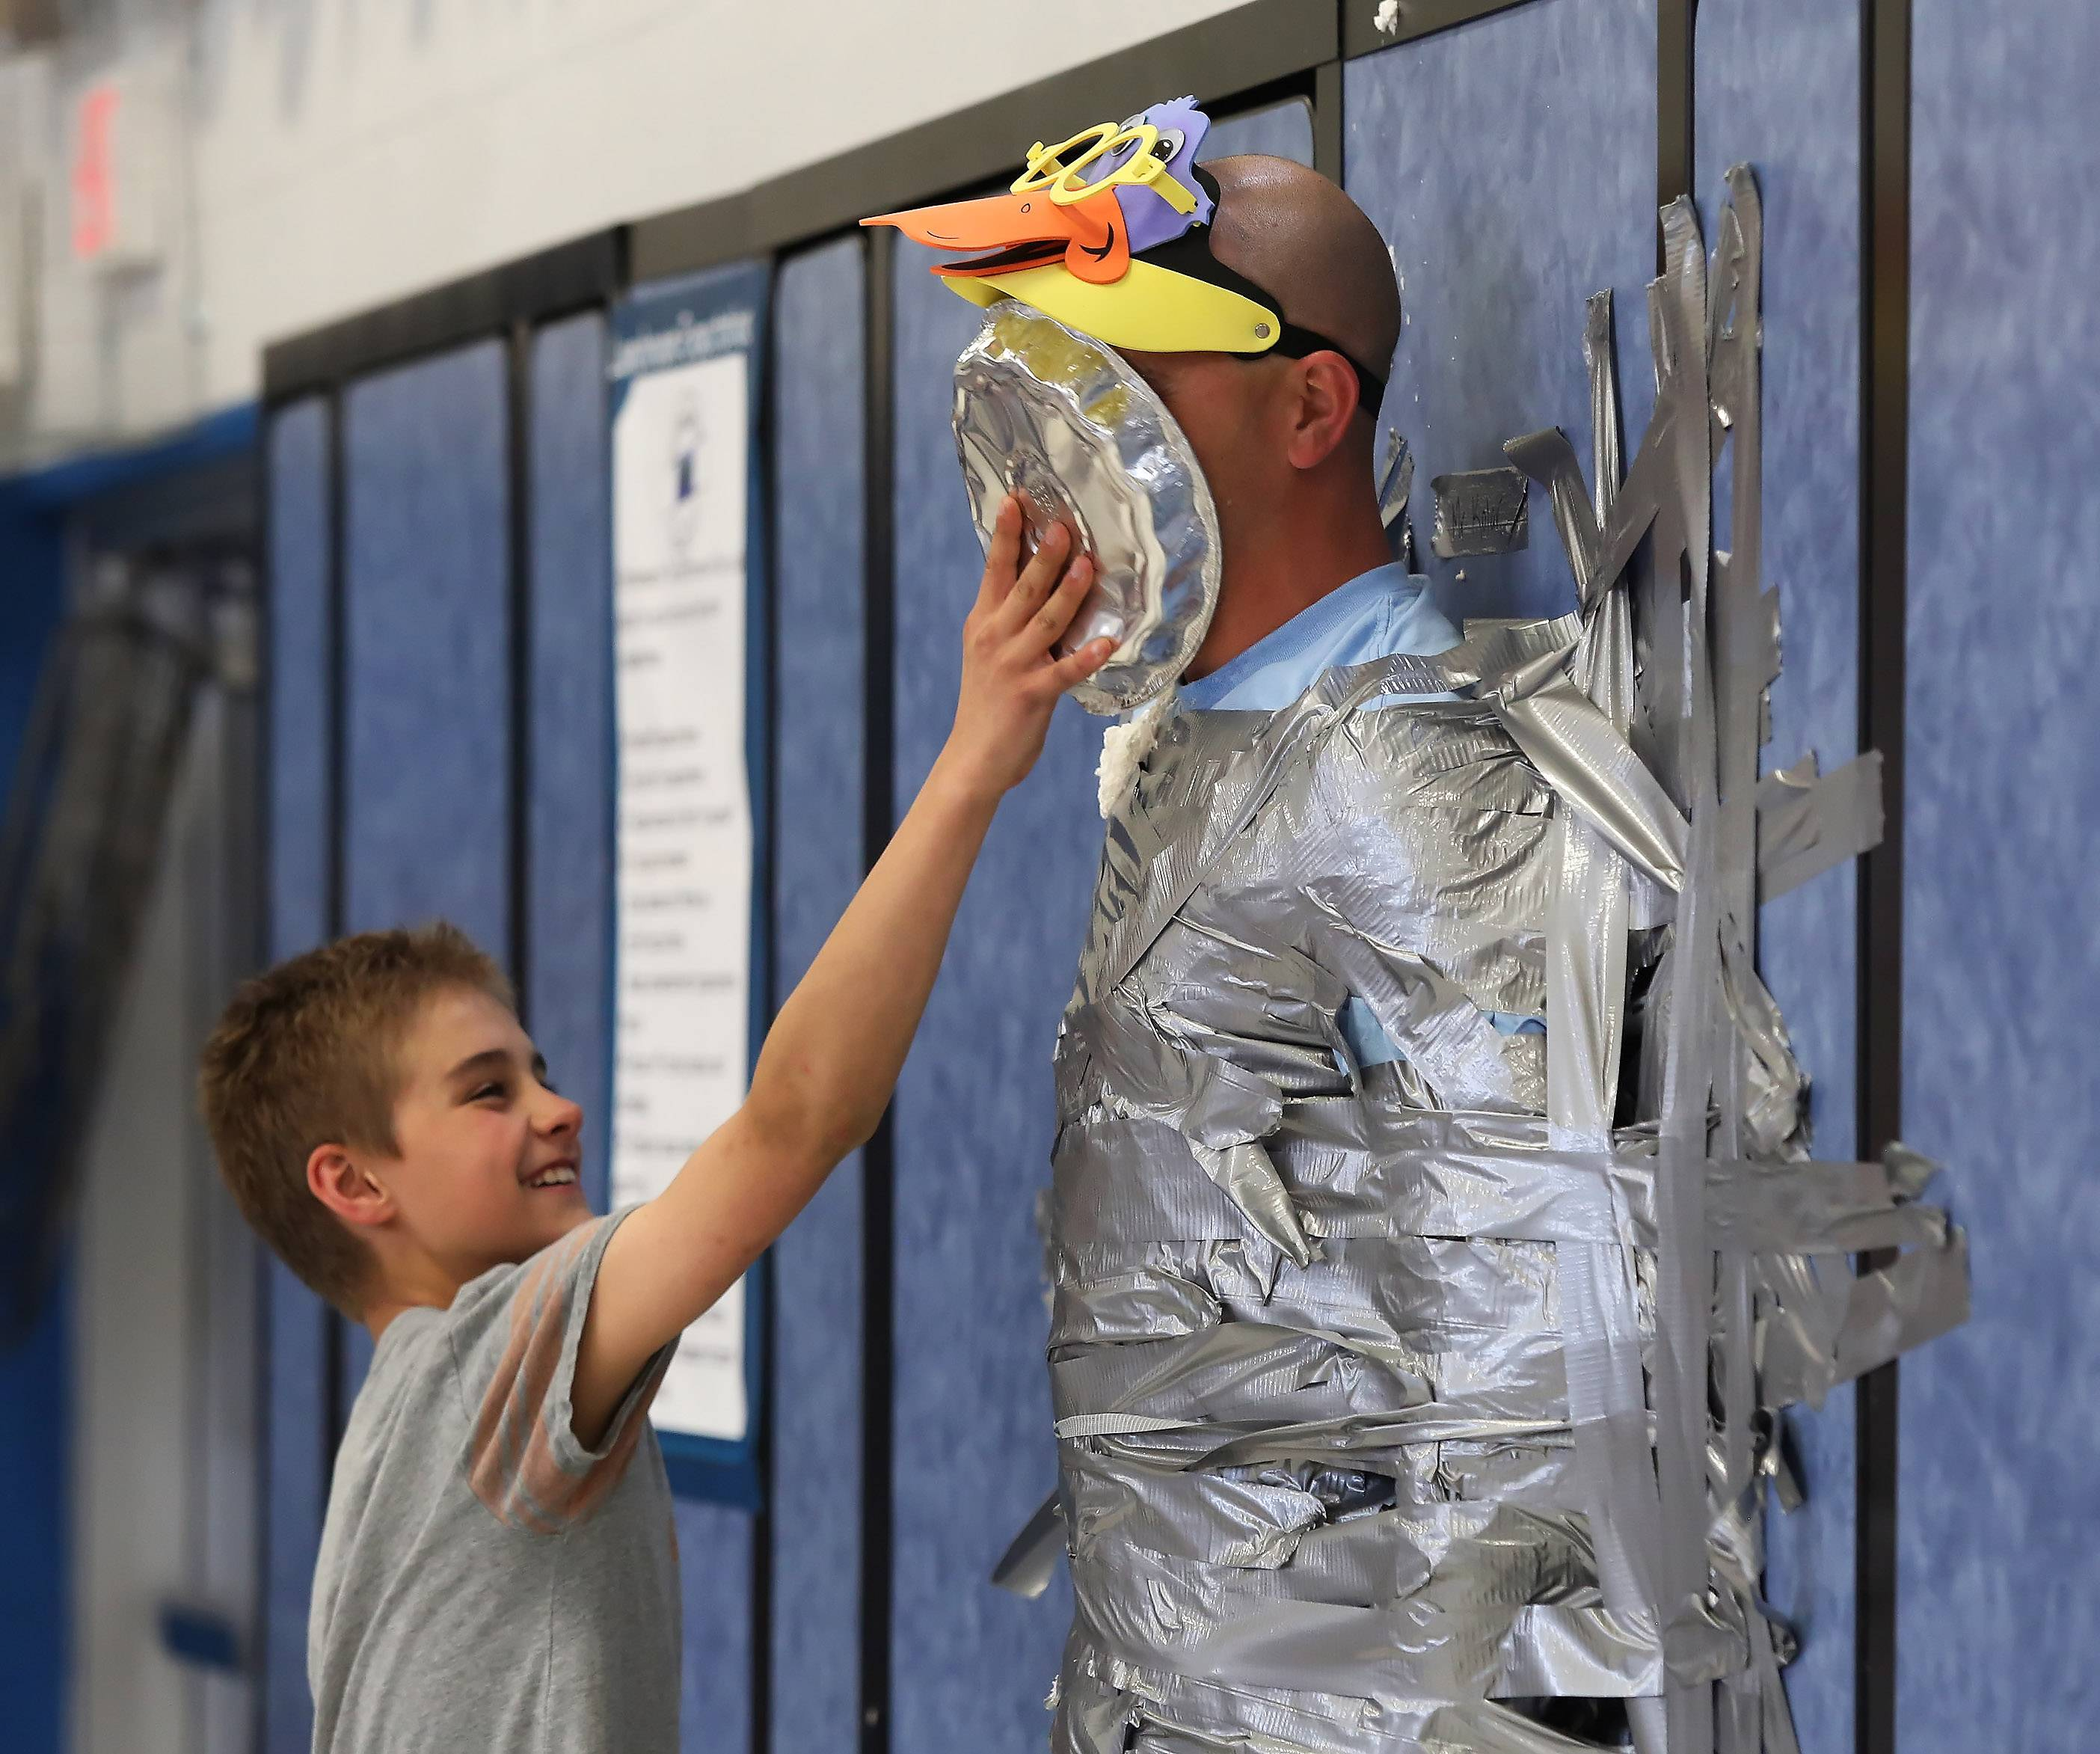 Rockland School fifth-grader Owen Elfering throws a pie in the face of physical education teacher Michael Kolar during an assembly Tuesday to celebrate the $7,217.46 raised for the American Heart Association through the Jump Rope For Heart fundraiser.